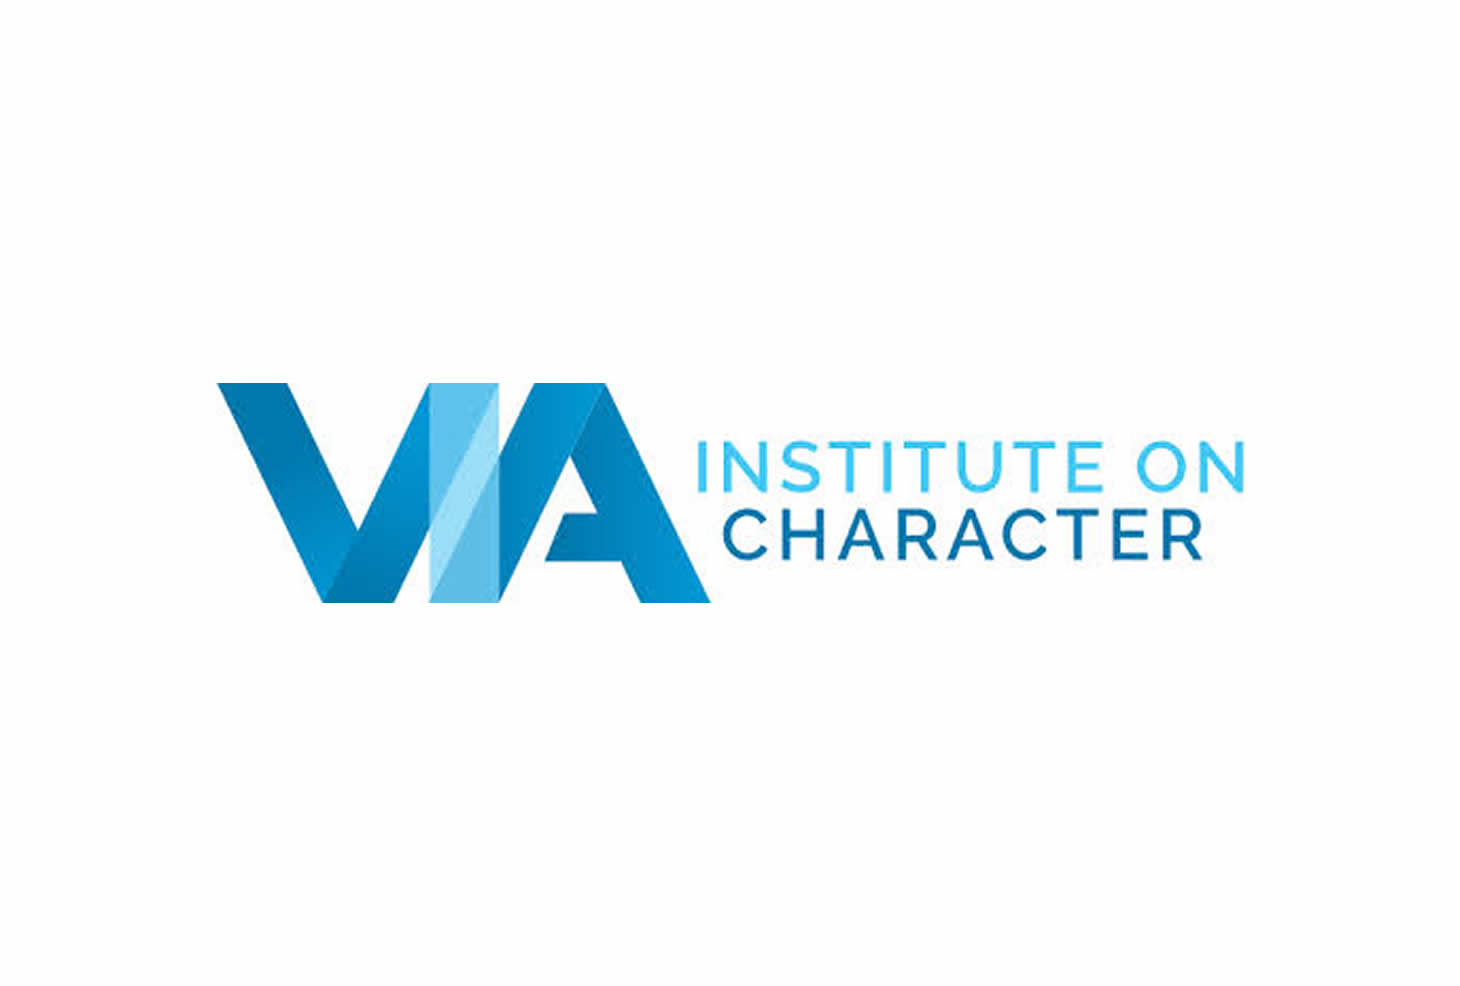 Institute On Character